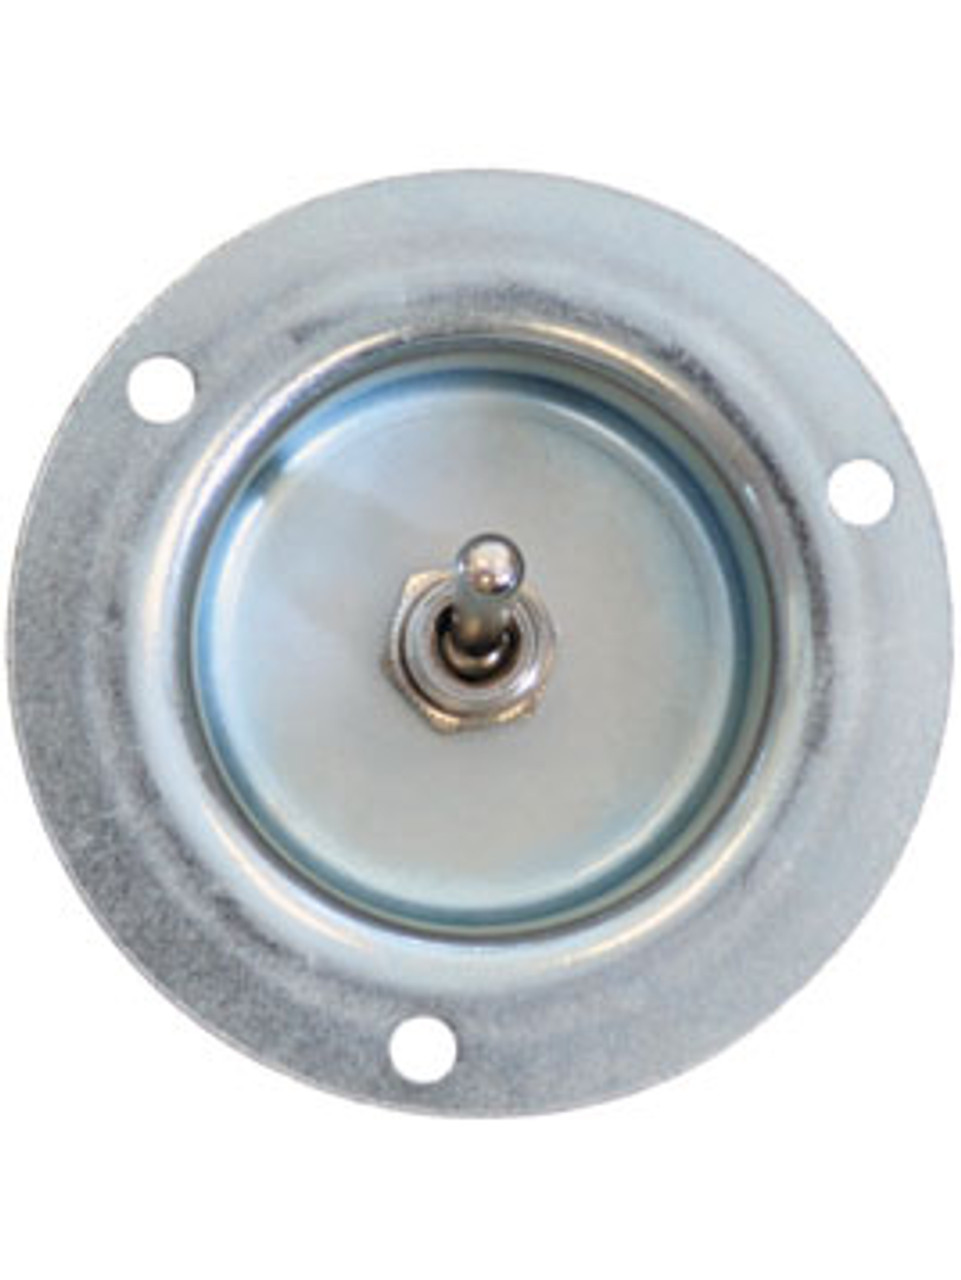 910 --- Recessed Toggle Switch